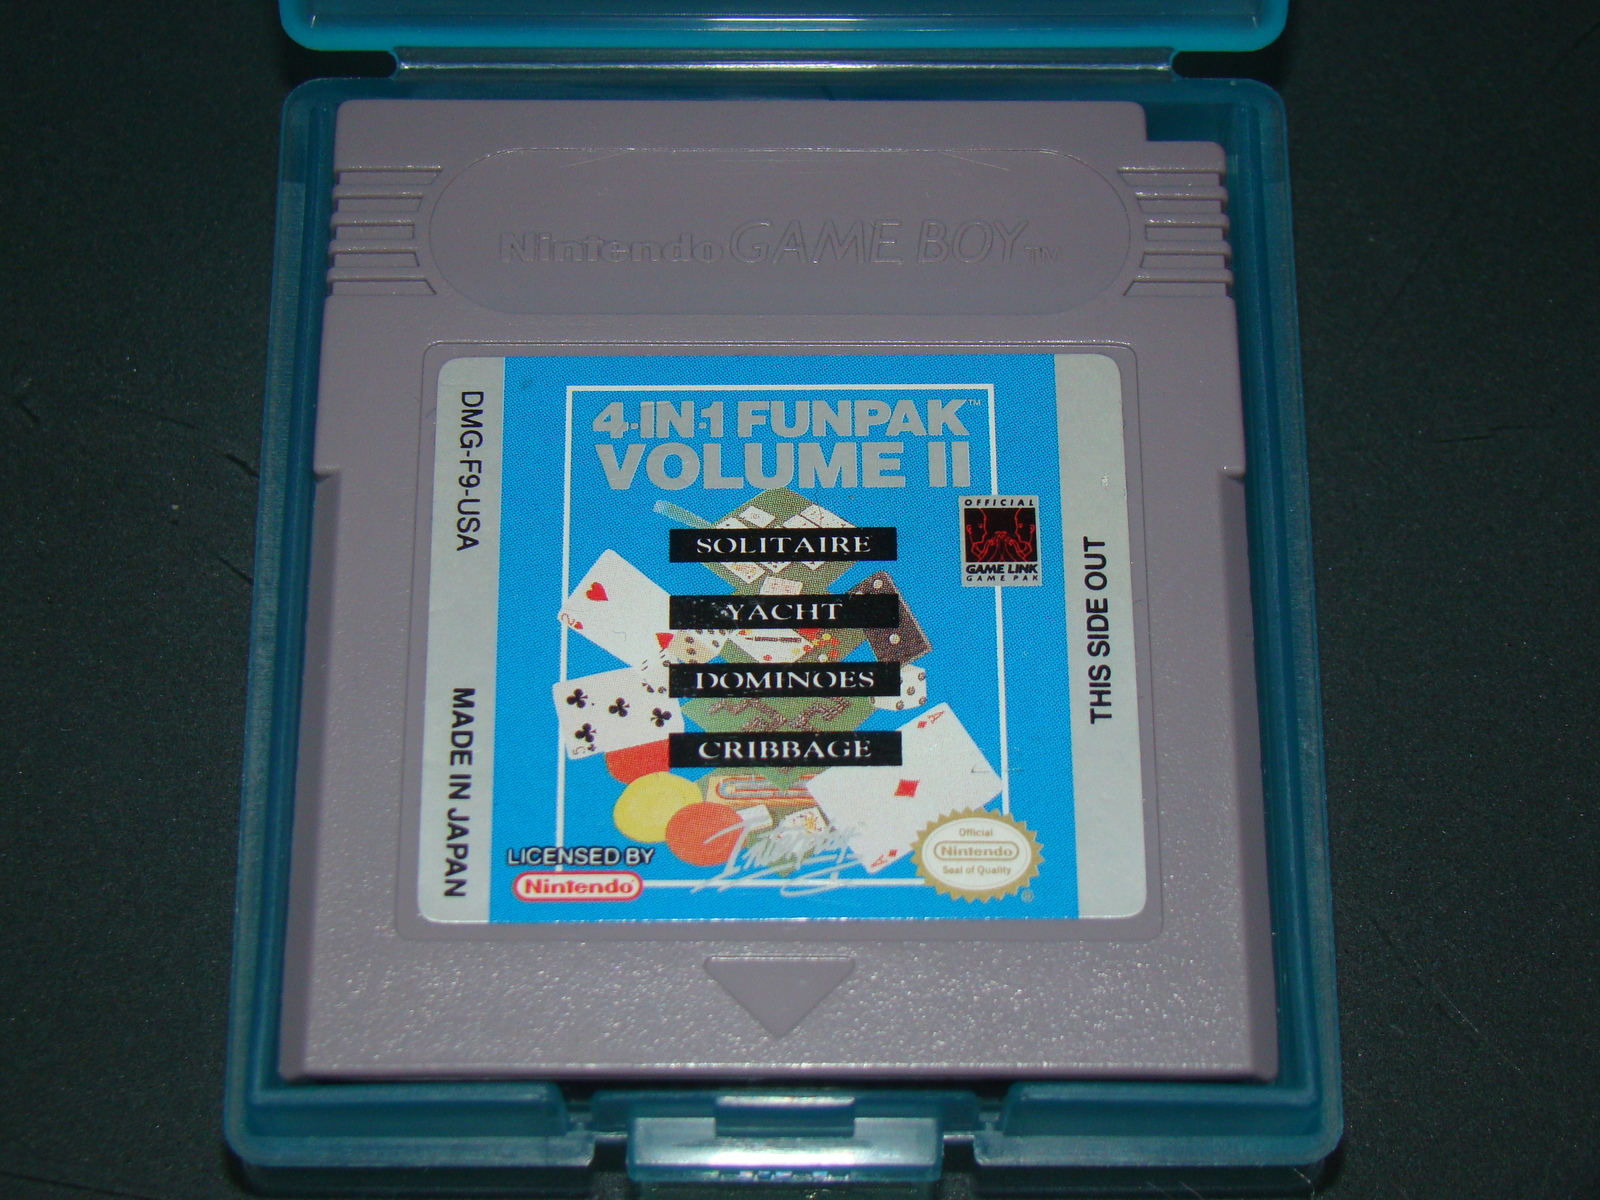 Primary image for Nintendo GAME BOY - 4-IN-1 FUNPAK VOLUME II (Game and Case)